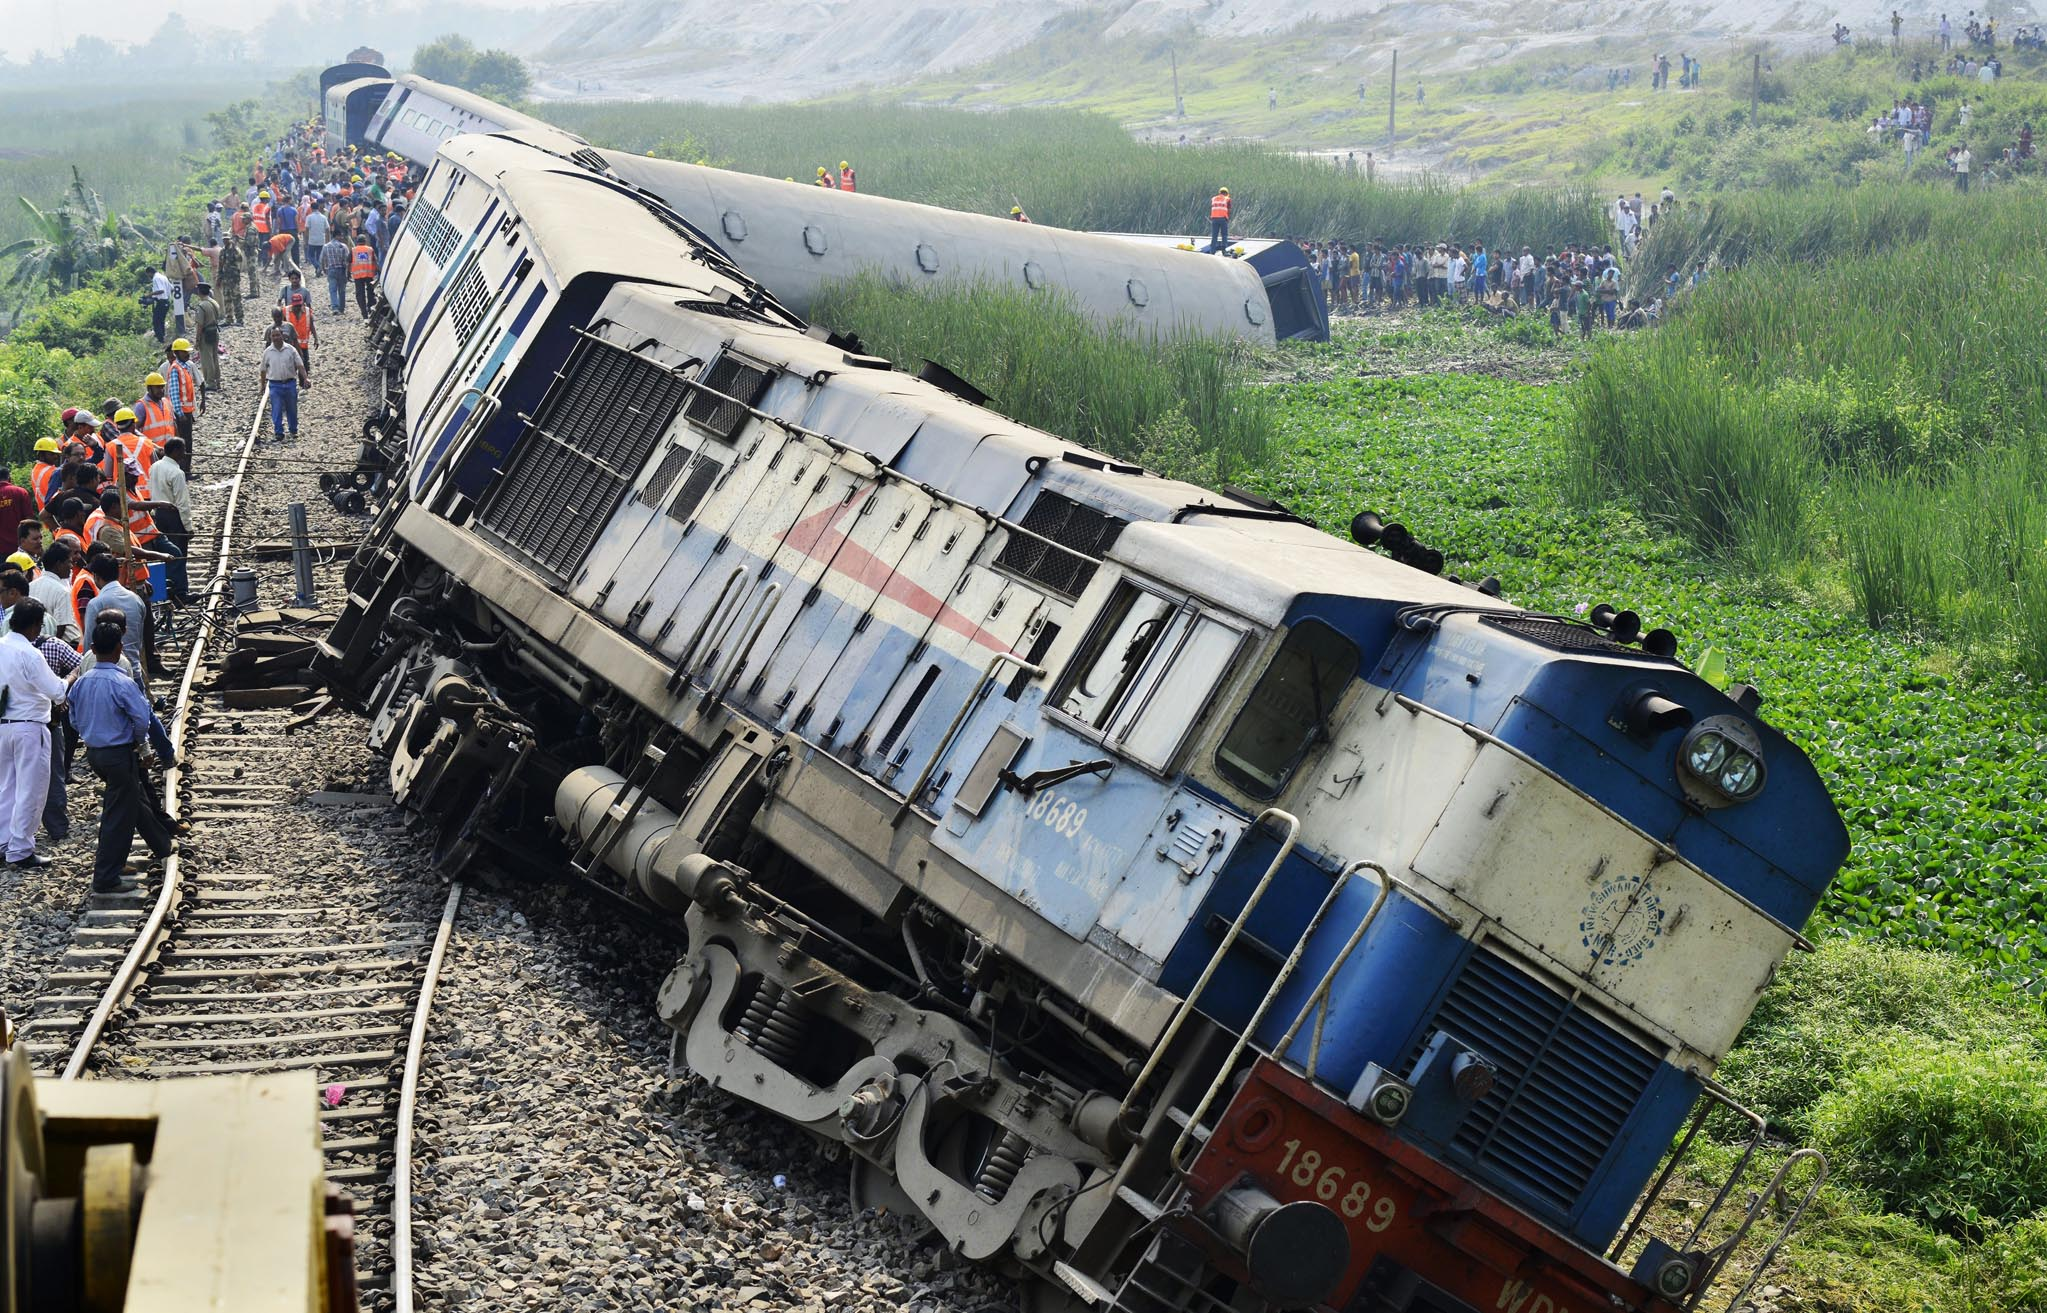 Train derailment in India leaves 45 passengers injured